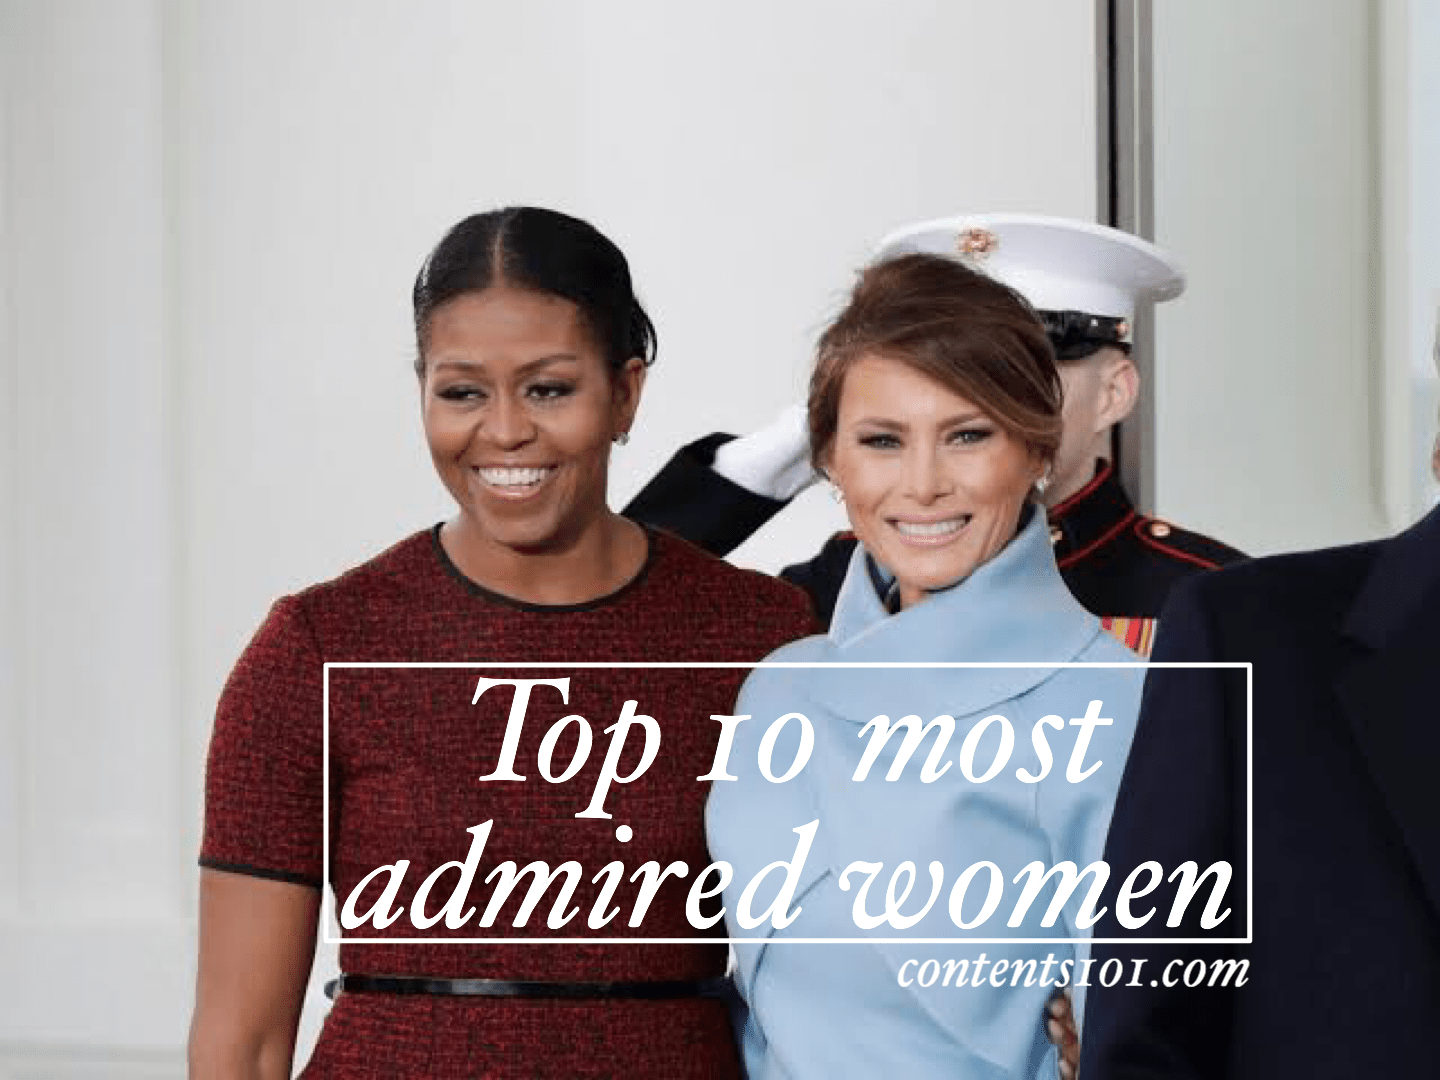 List of Top 10 most admired women 2020